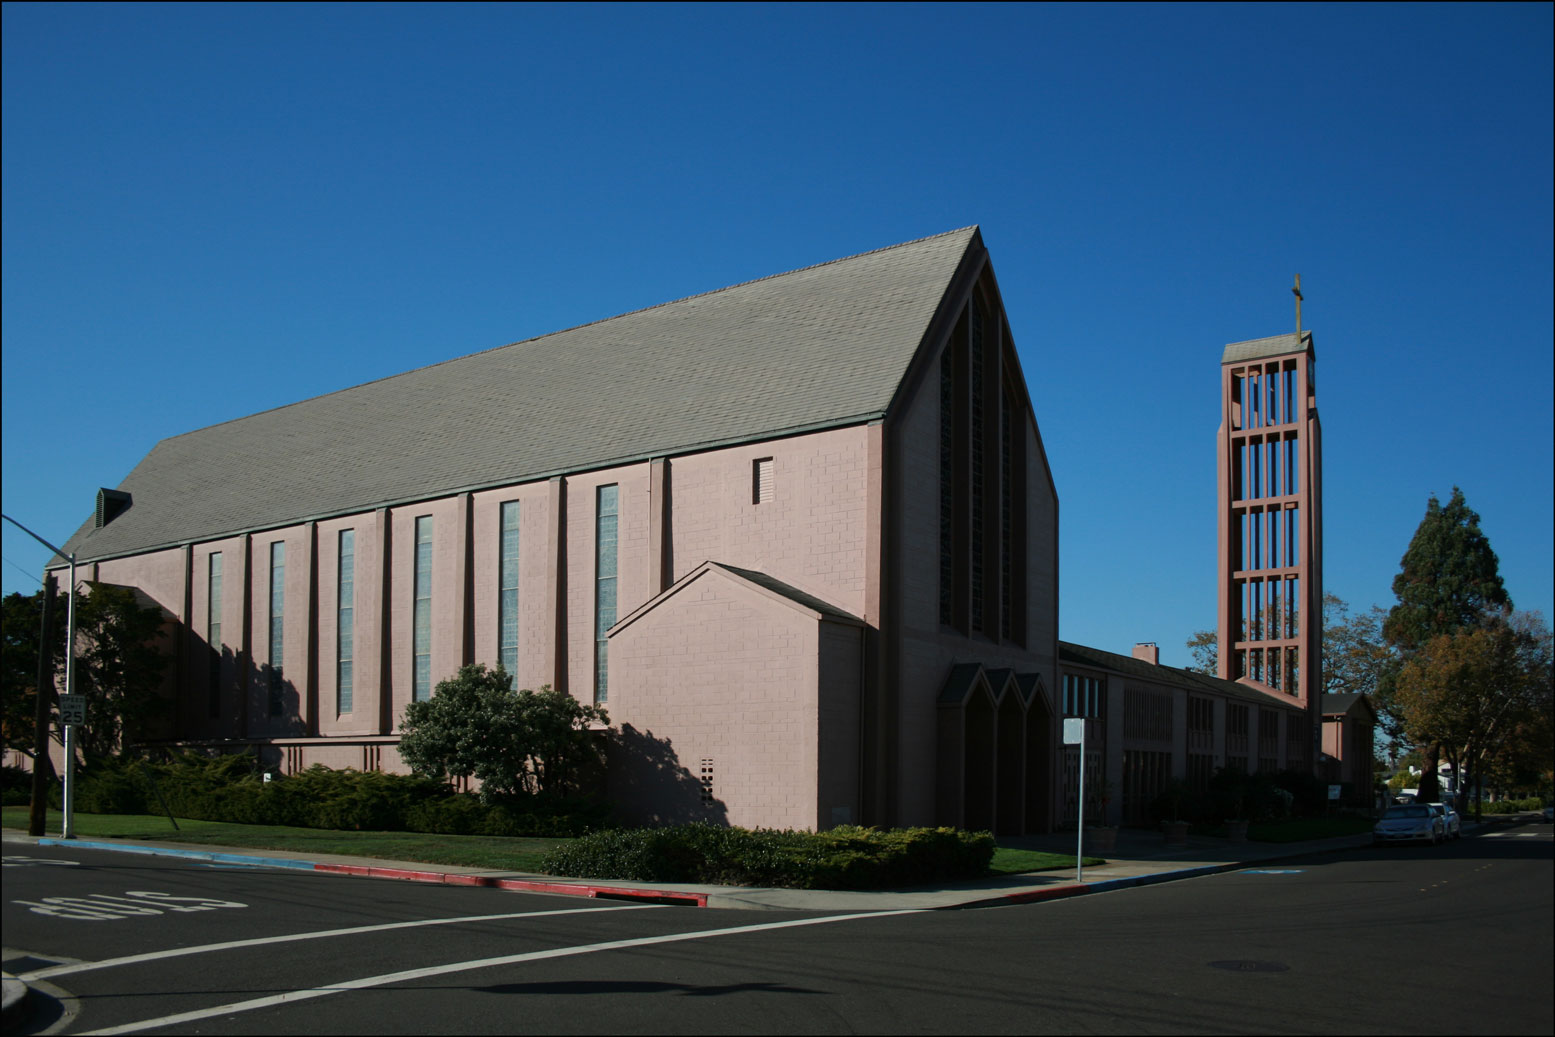 First Presbyterian Church in San Mateo California